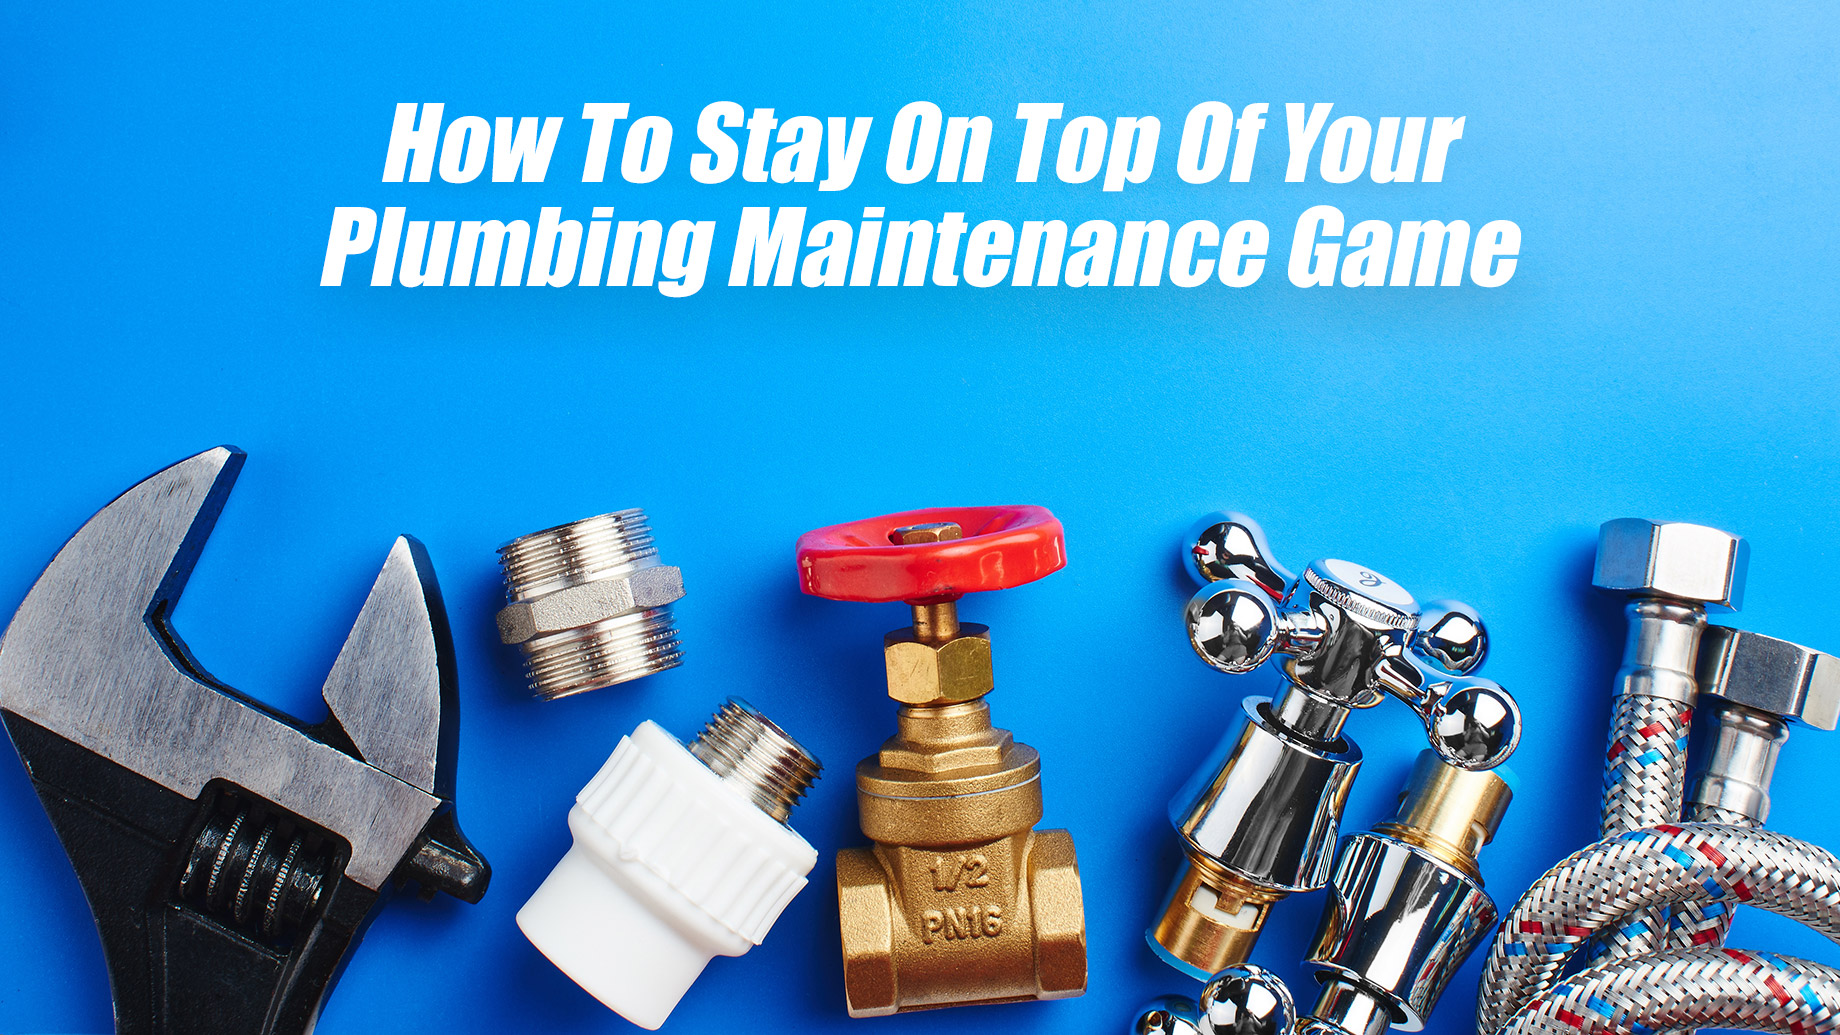 How To Stay On Top Of Your Plumbing Maintenance Game